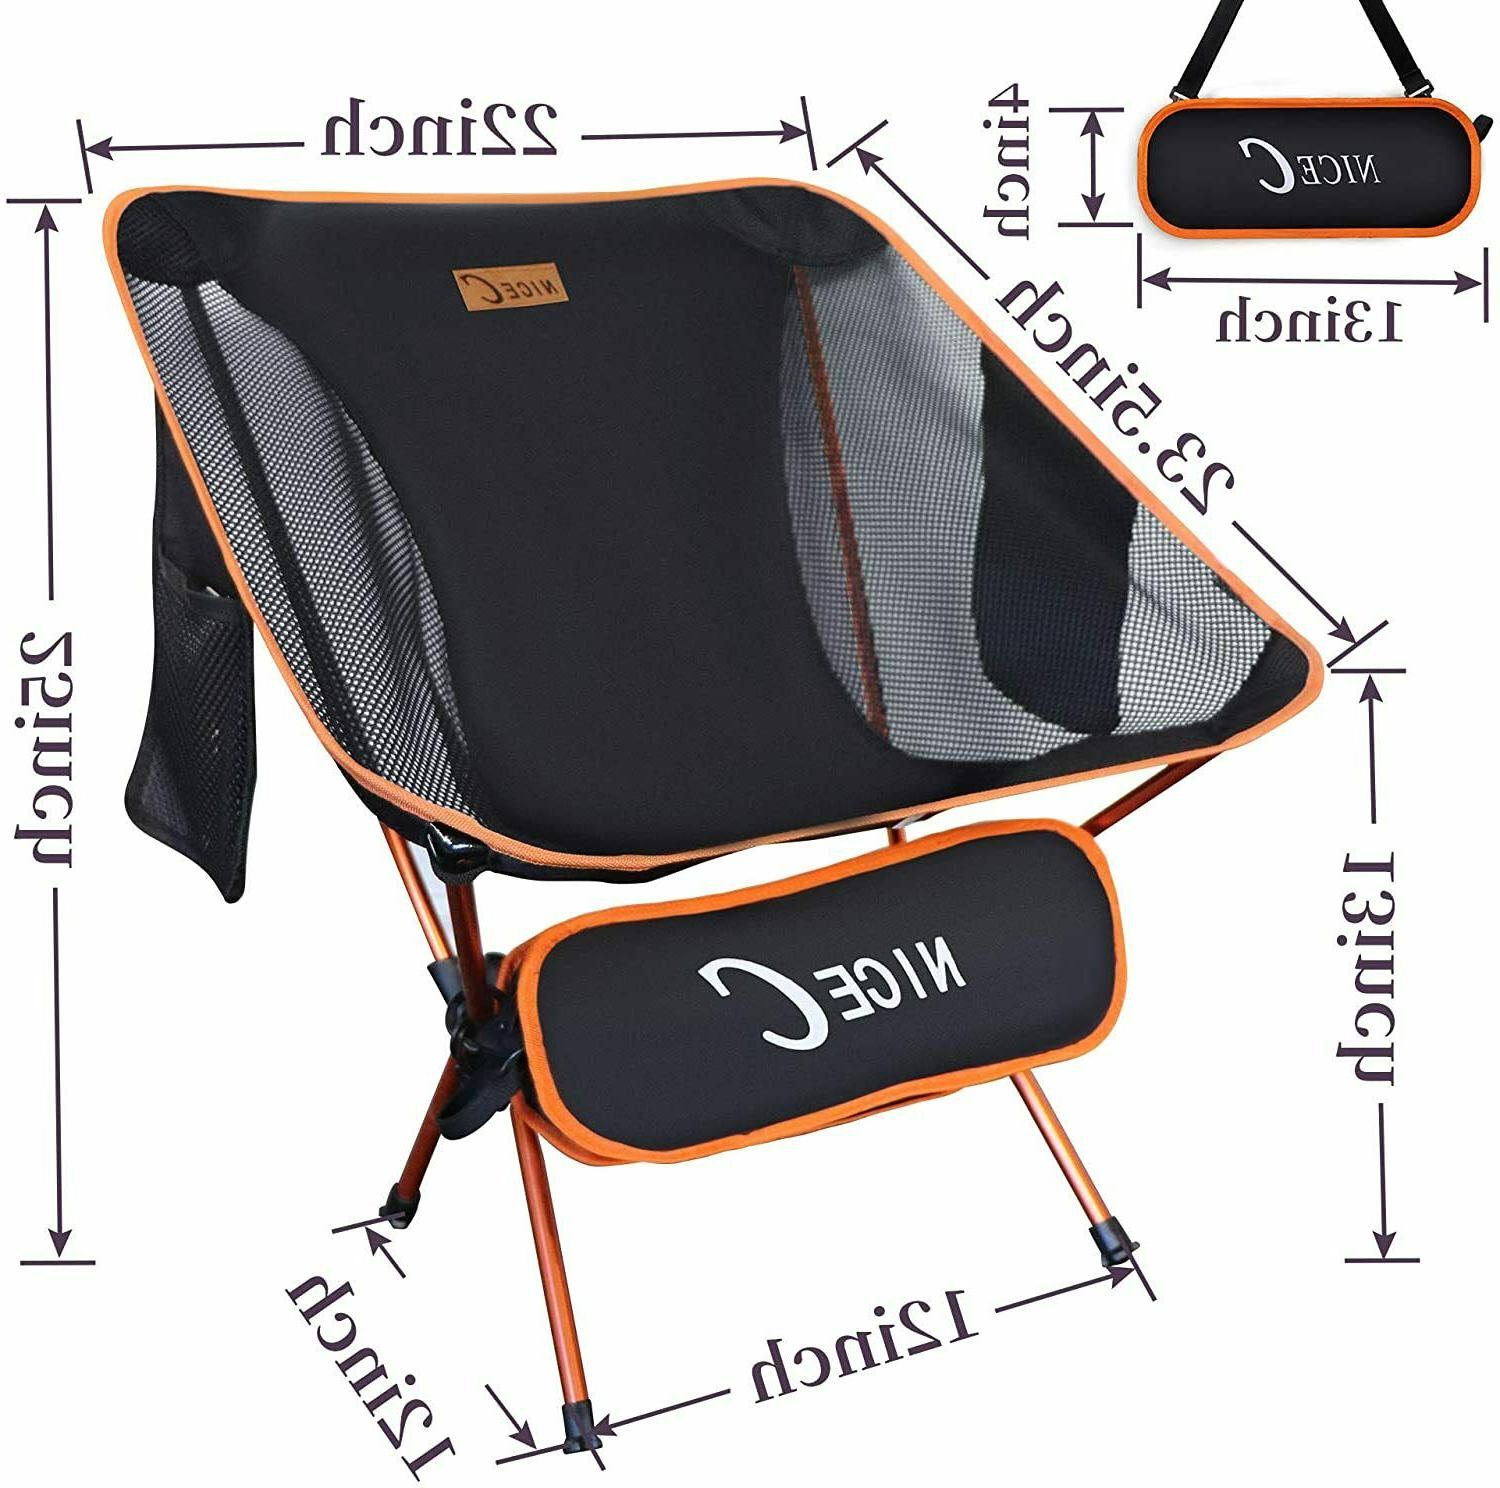 NiceC Ultralight Backpacking Chair with 2 Storage